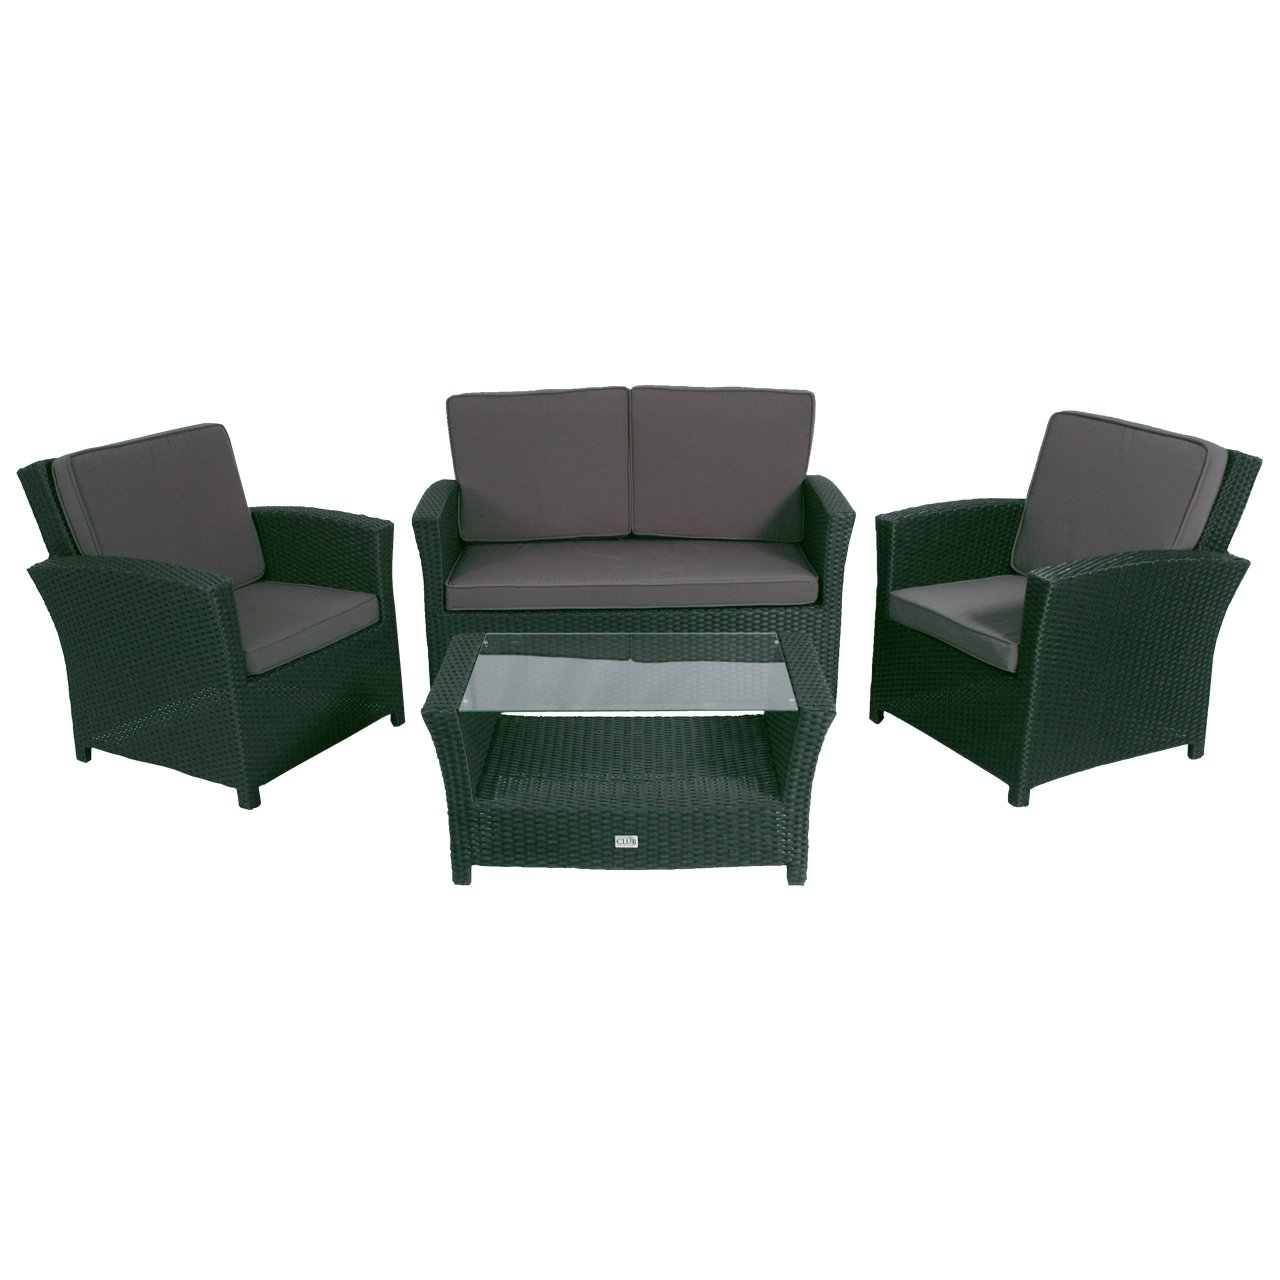 poly rattan lounge set 4tlg schwarz gartenm bel tisch. Black Bedroom Furniture Sets. Home Design Ideas